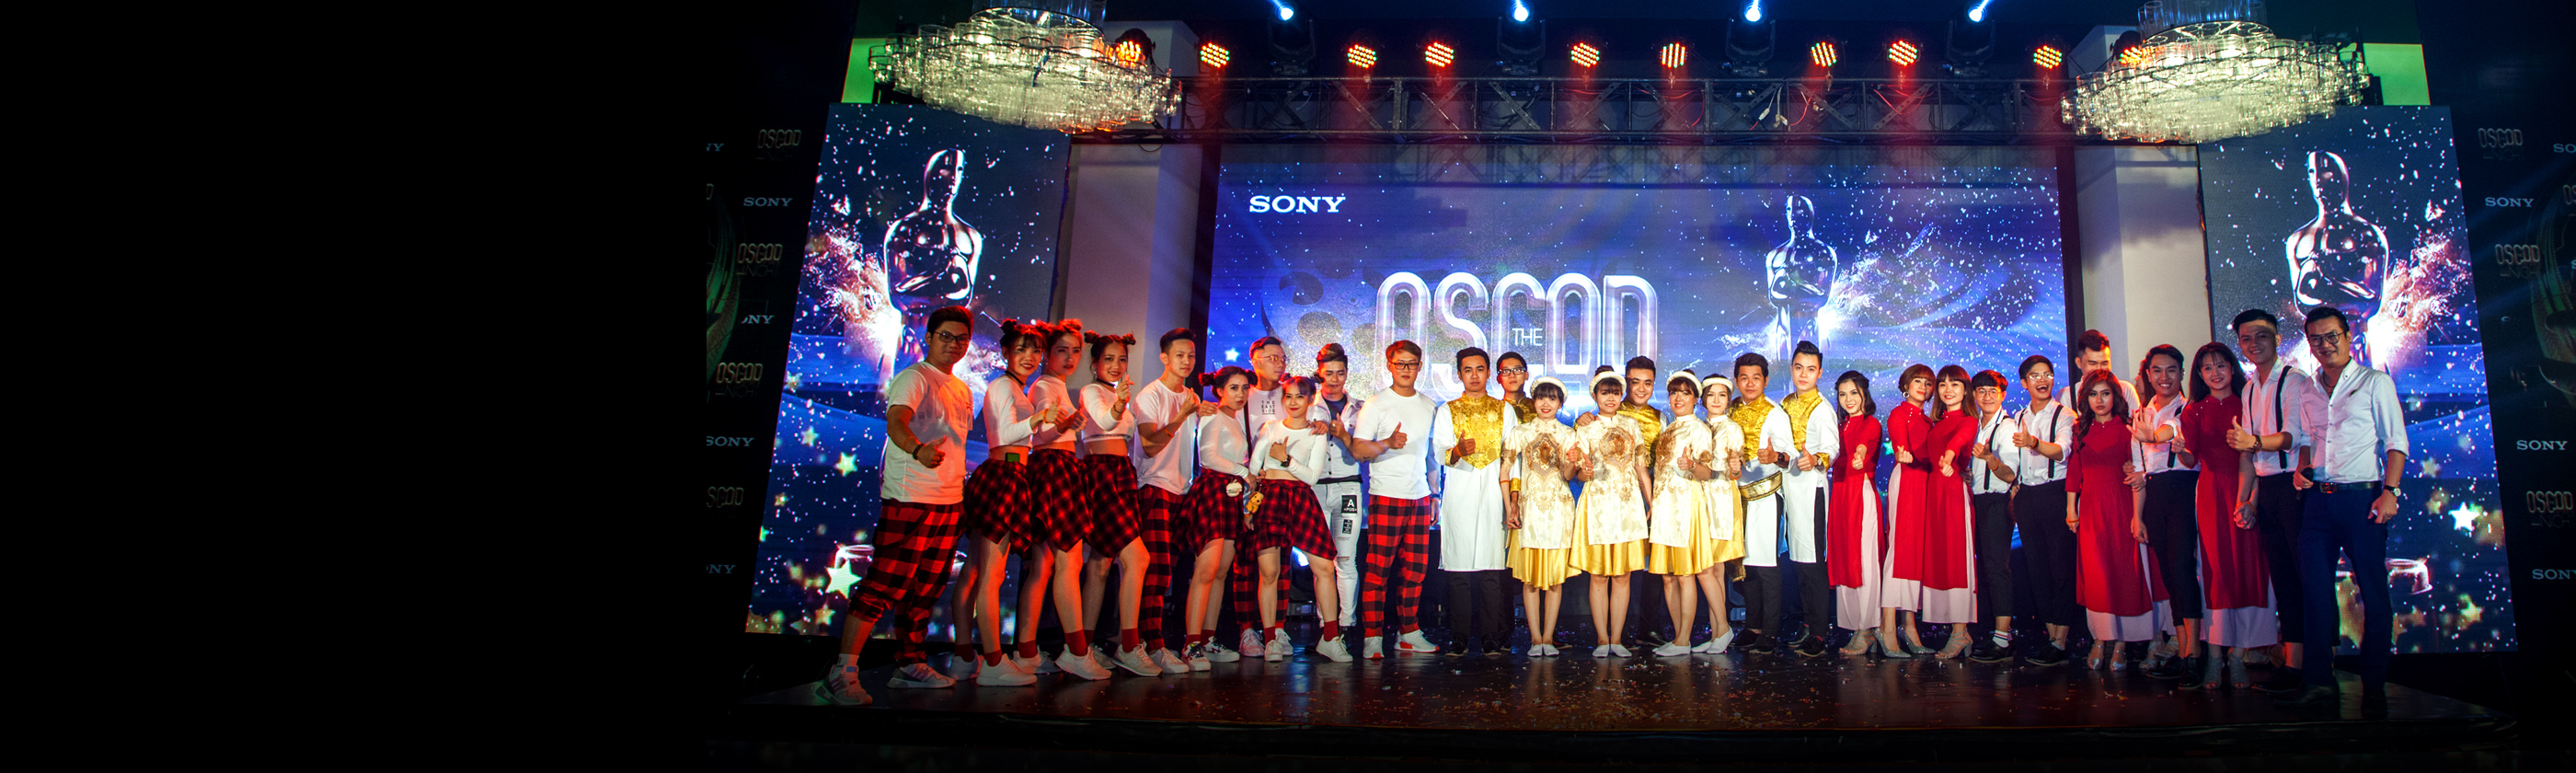 y-tuong-year-end-party-oscar